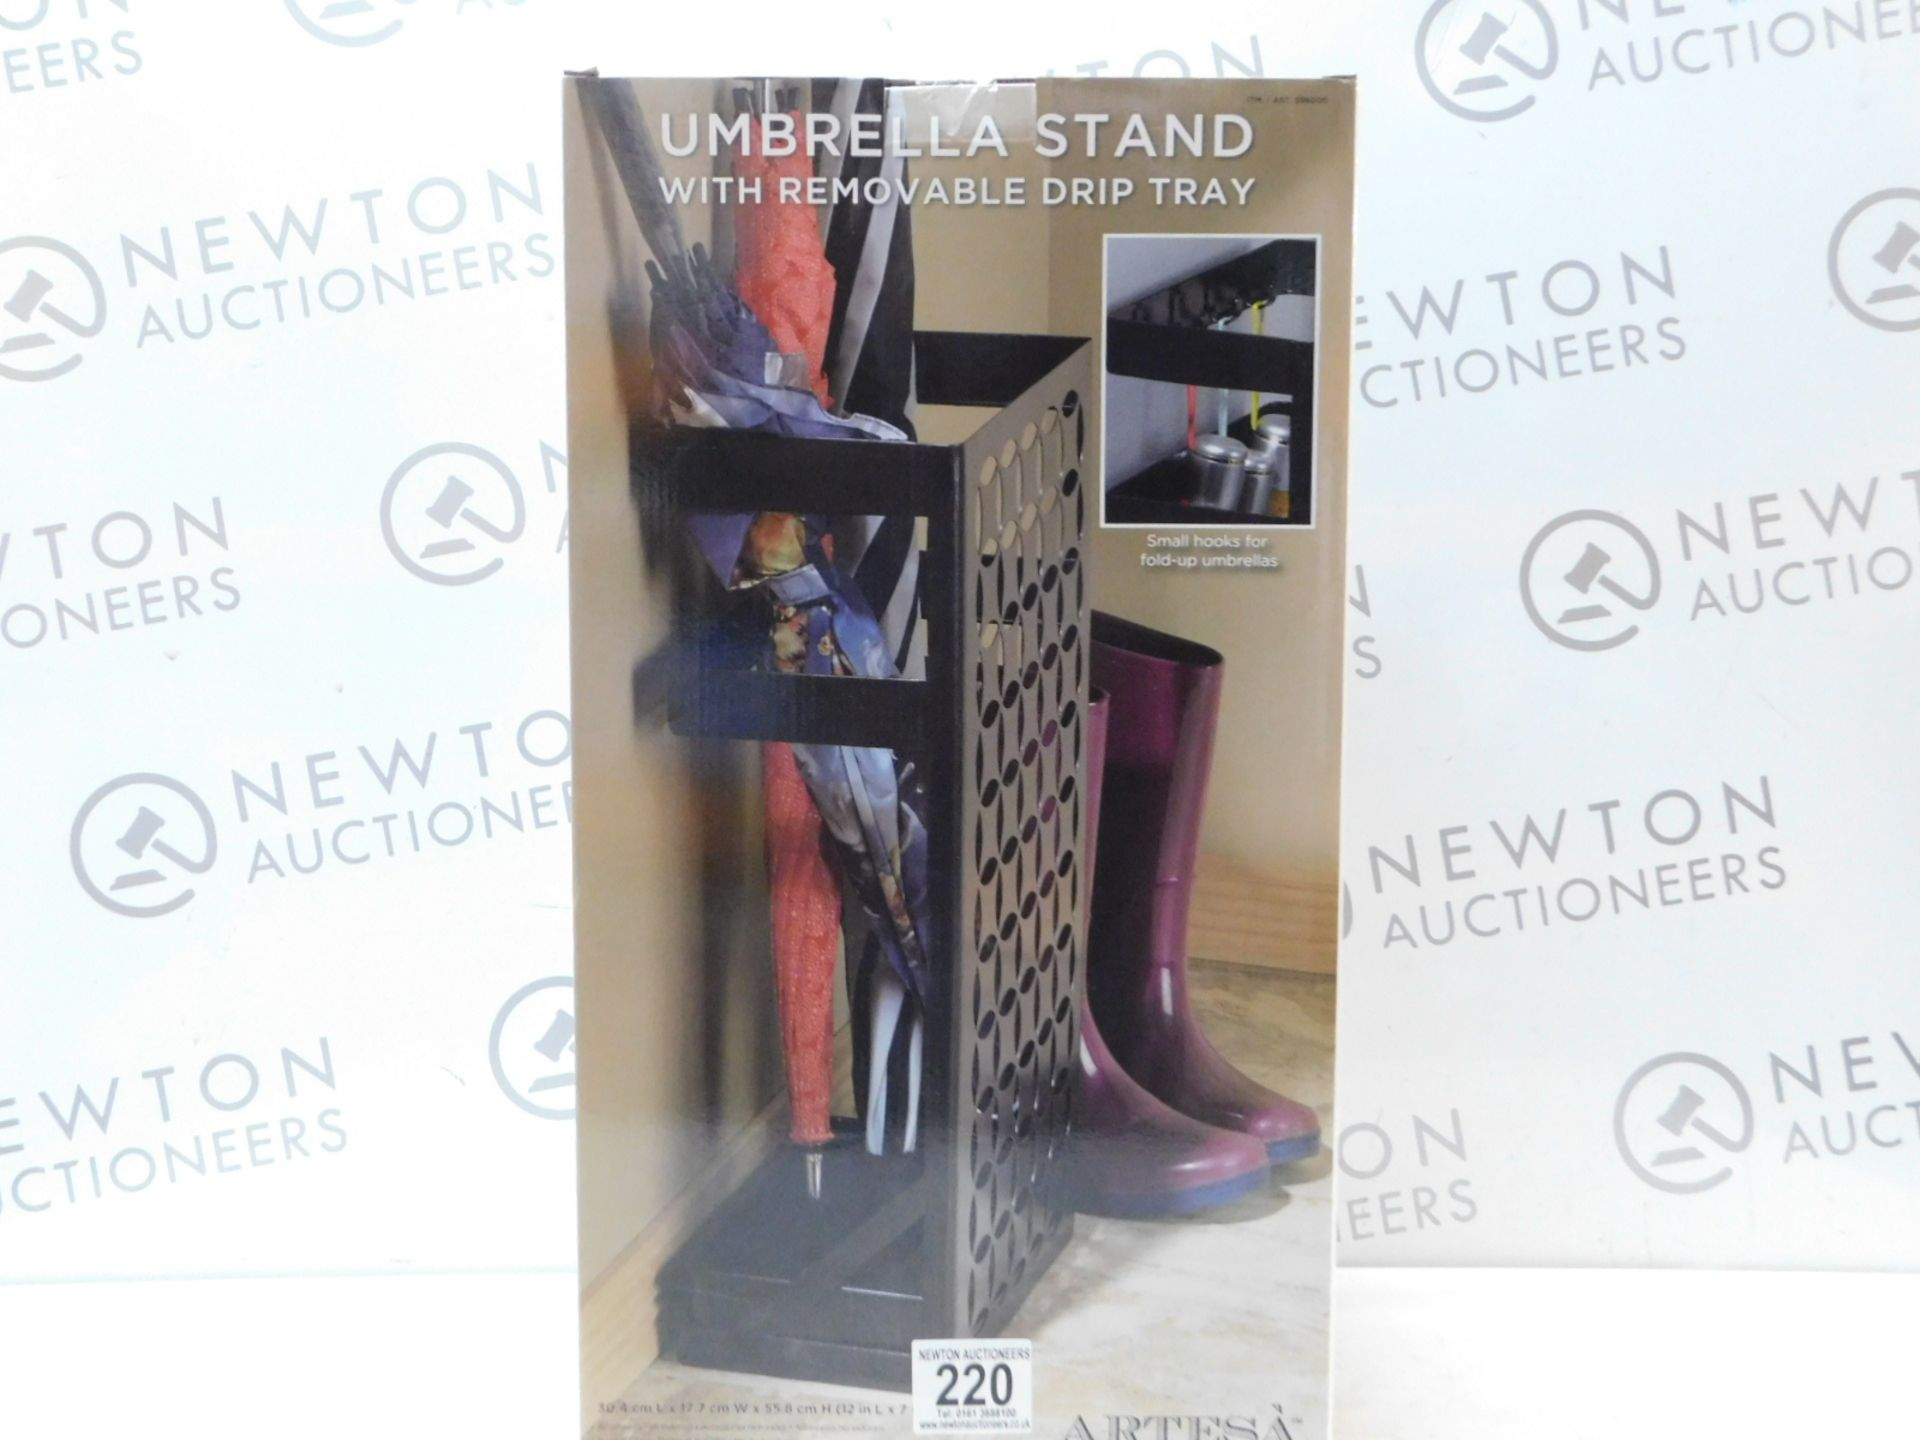 Lot 220 - 1 BRAND NEW BOXED ARTESA UMBRELLA STAND WITH REMOVABLE DRIP TRAY RRP £44.99